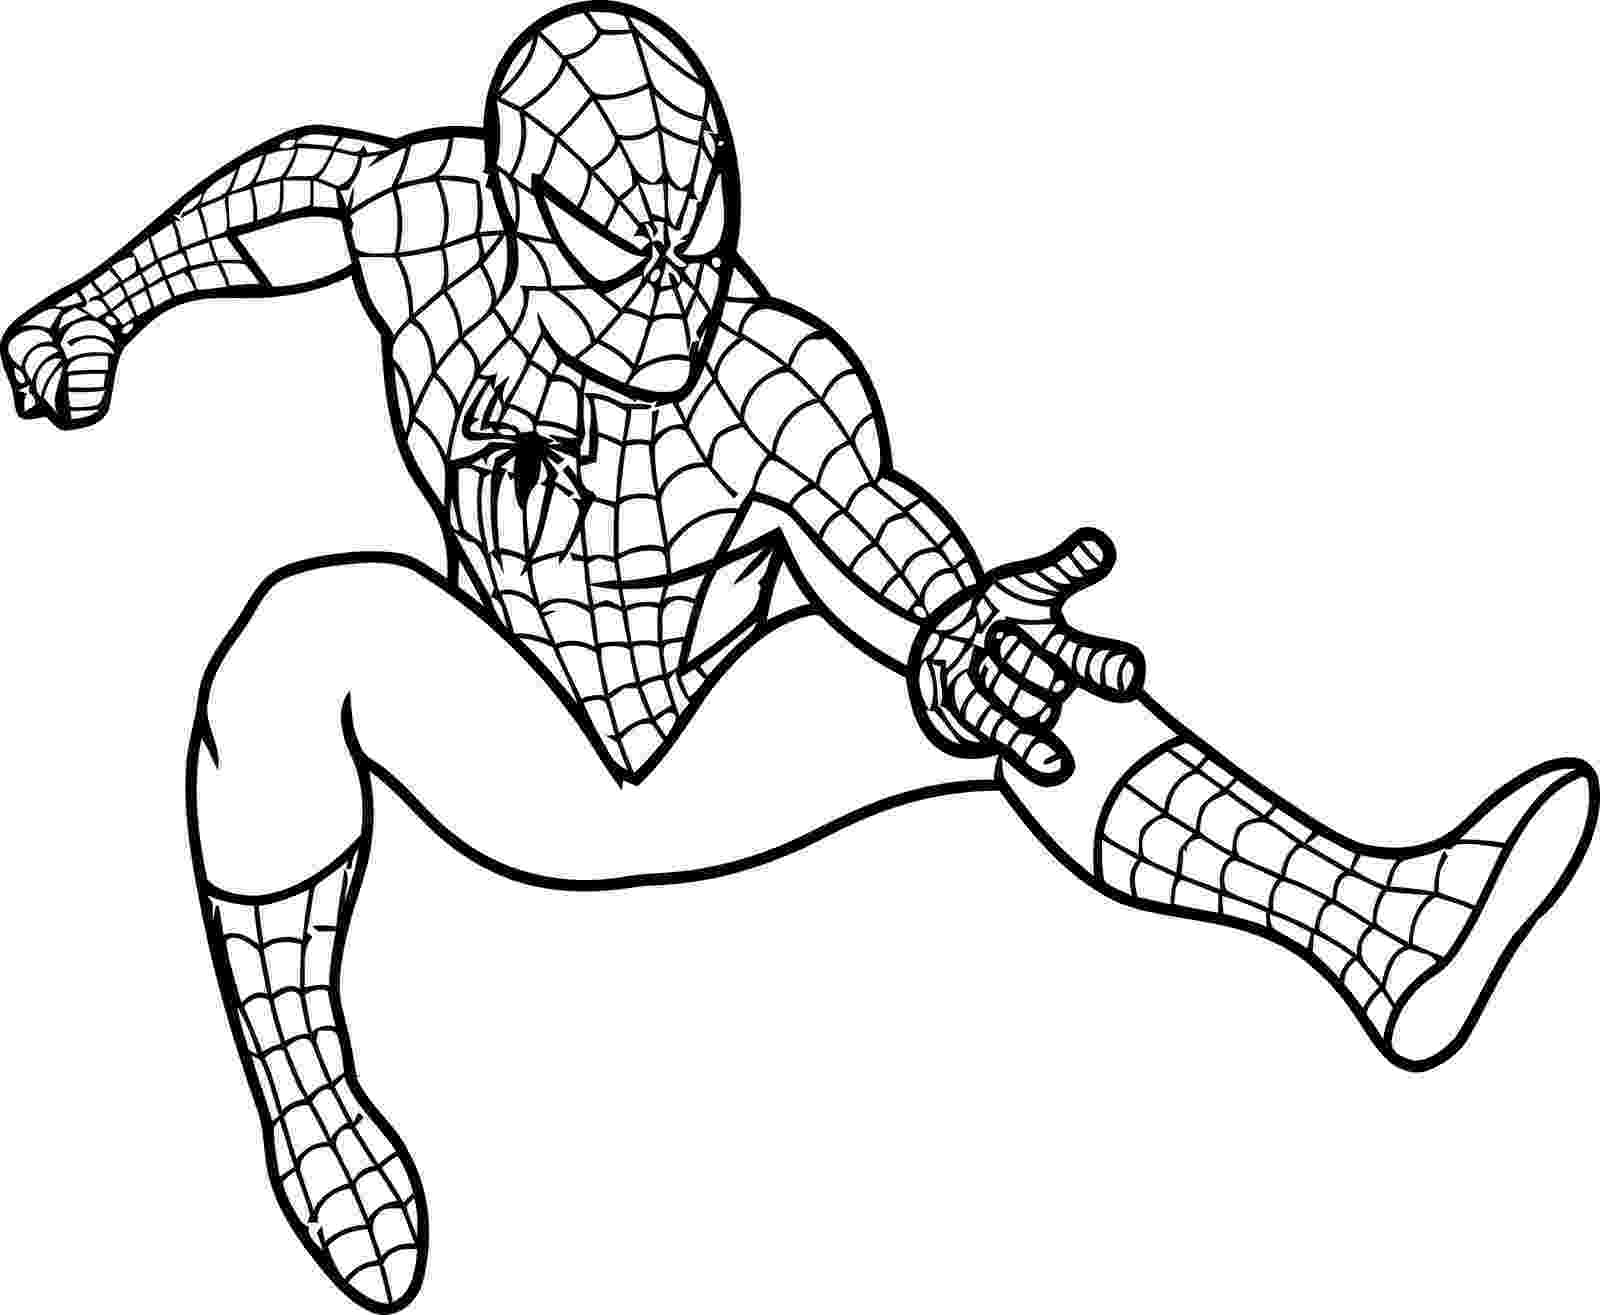 spiderman color sheet printable spiderman coloring pages for kids cool2bkids sheet color spiderman